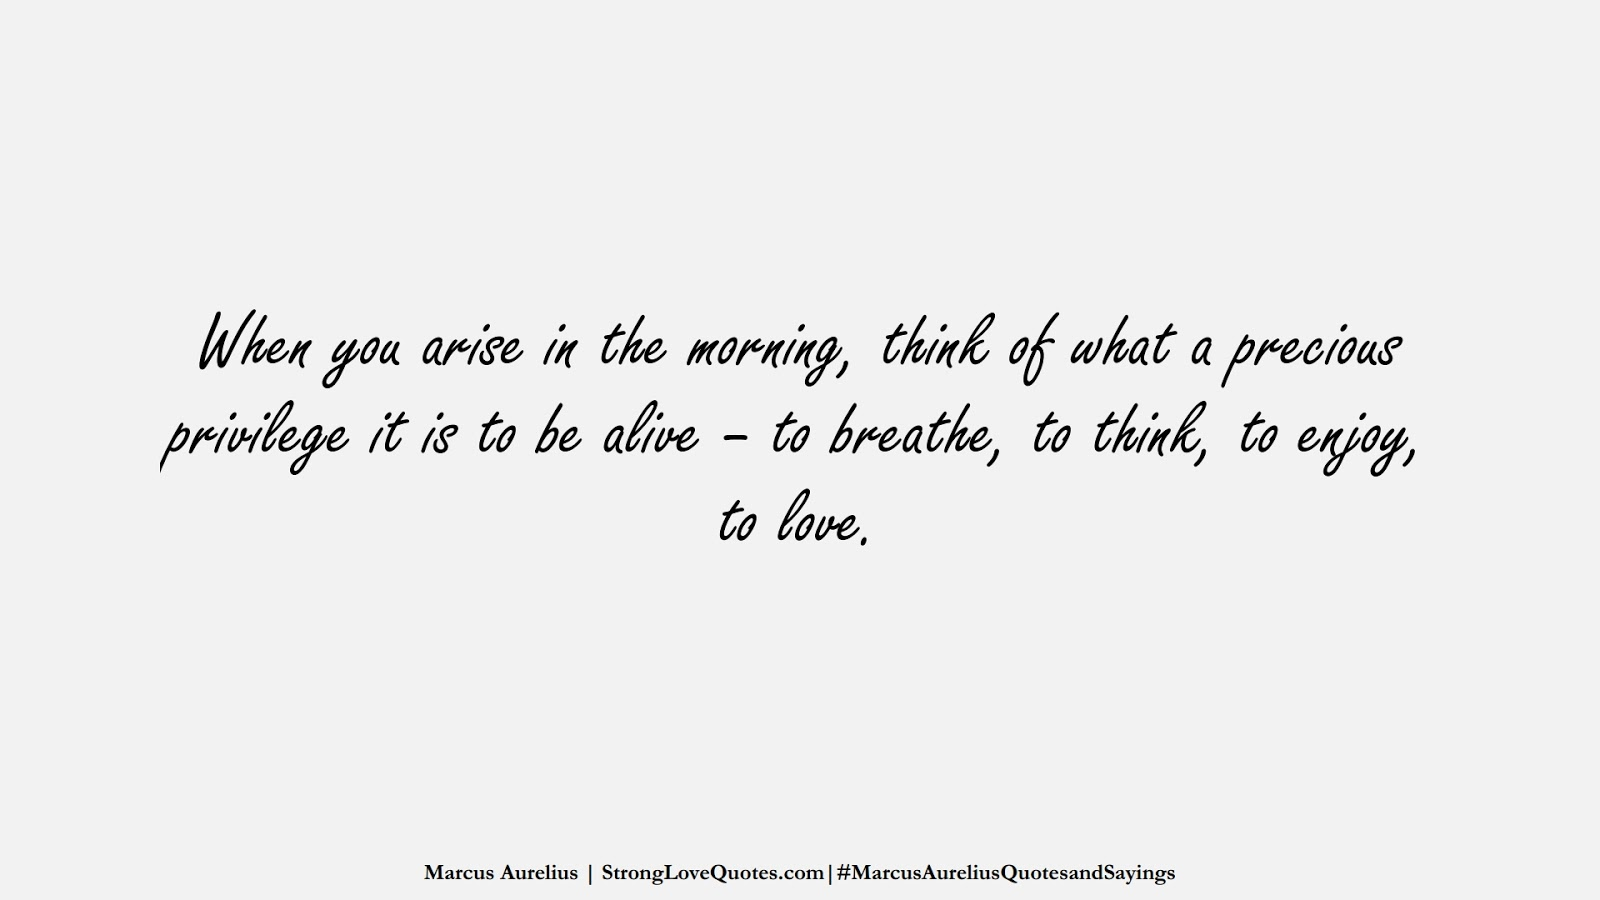 When you arise in the morning, think of what a precious privilege it is to be alive – to breathe, to think, to enjoy, to love. (Marcus Aurelius);  #MarcusAureliusQuotesandSayings